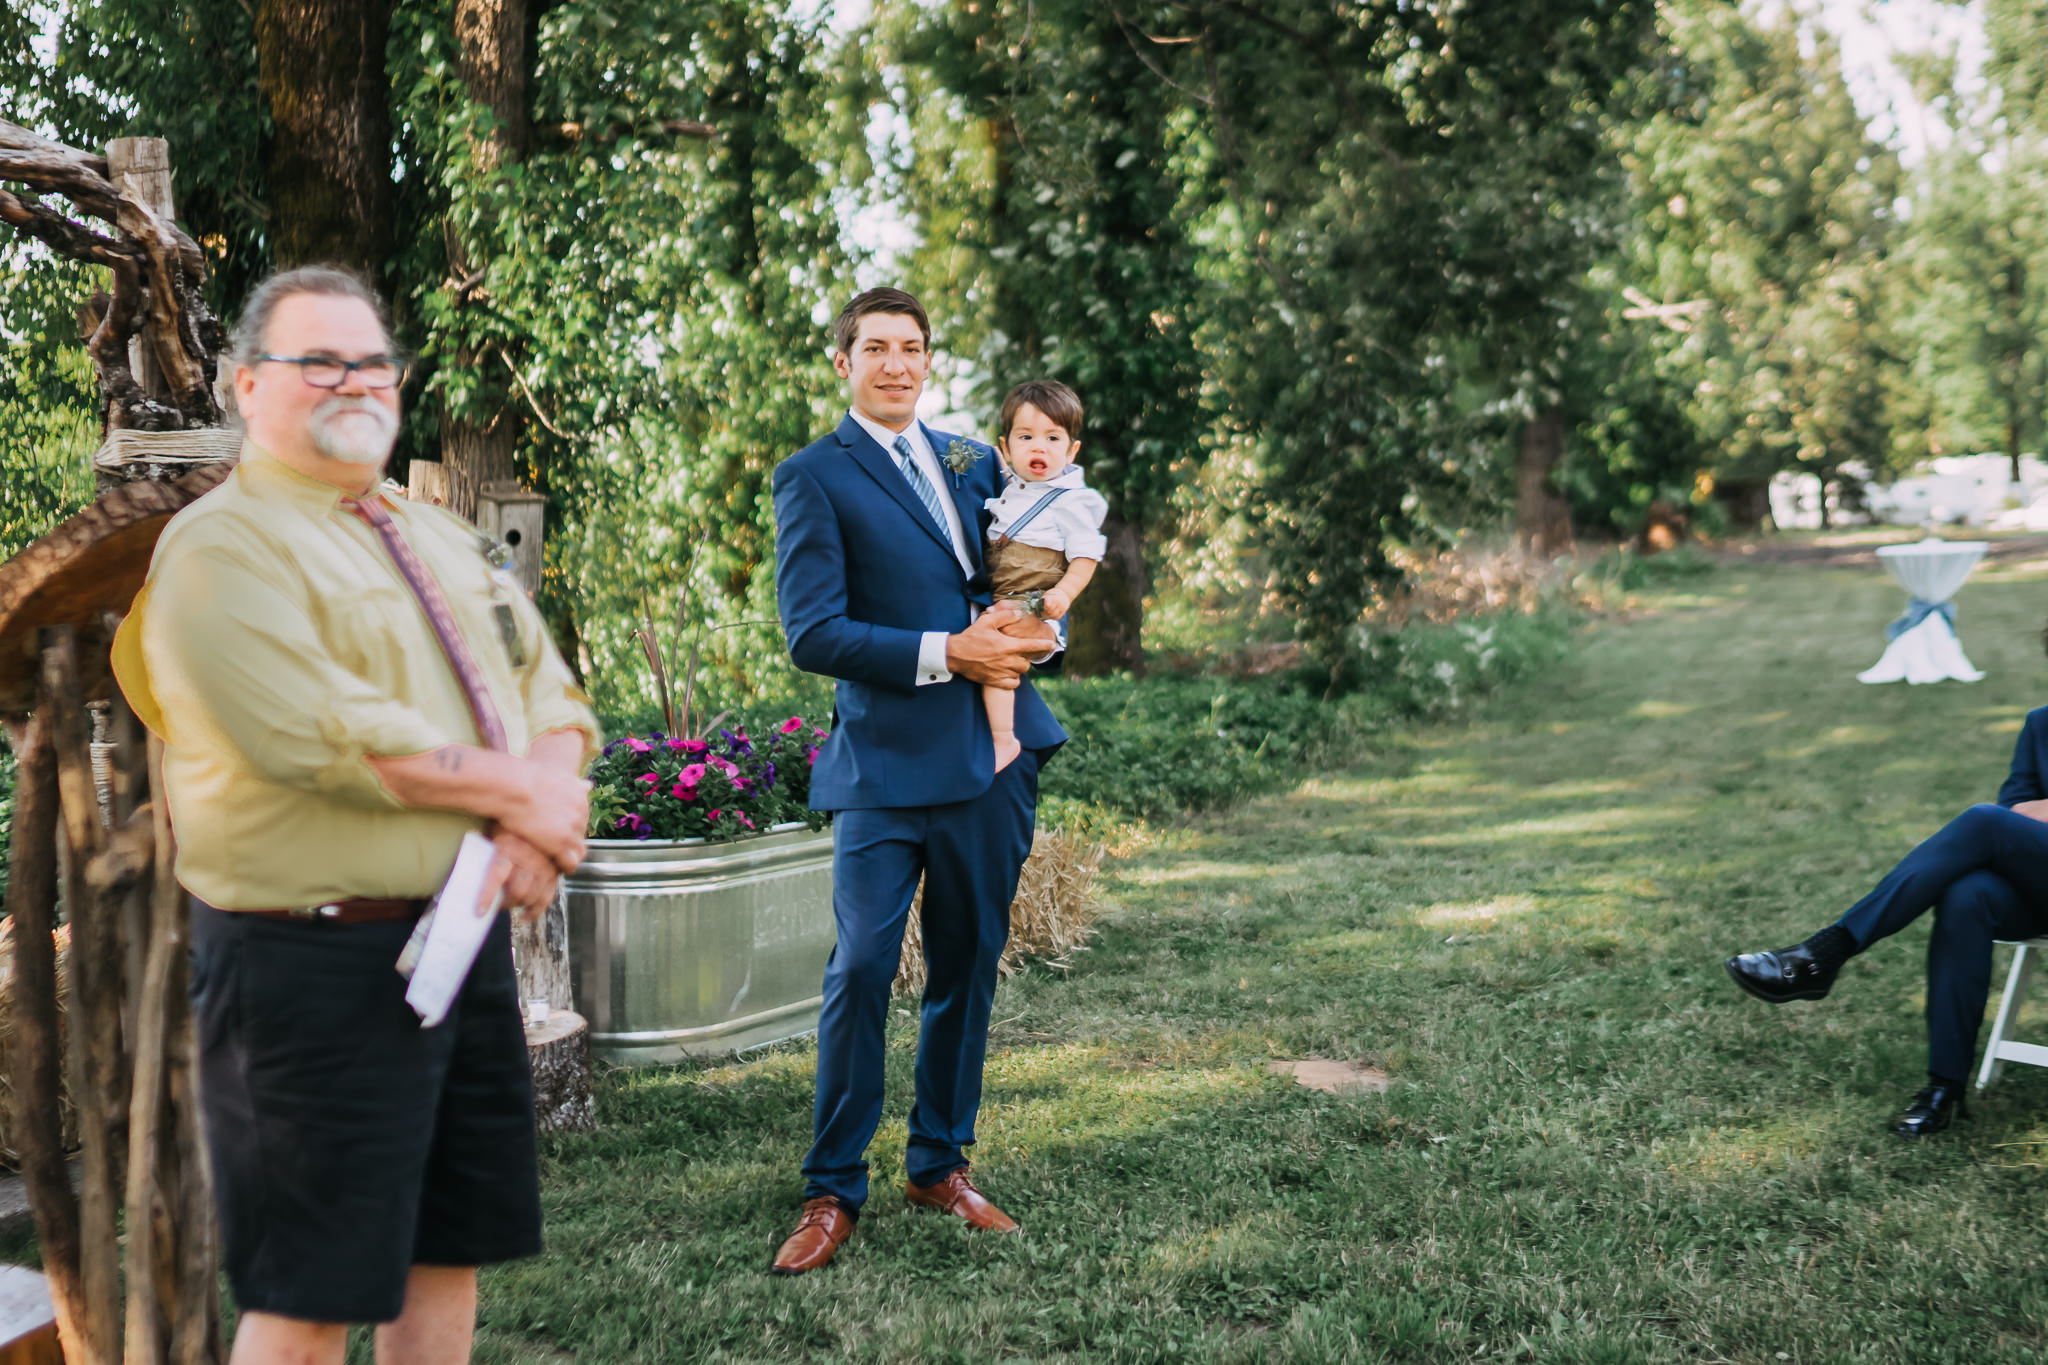 Groom hold son wedding party ceremony at altar Backyard wedding green